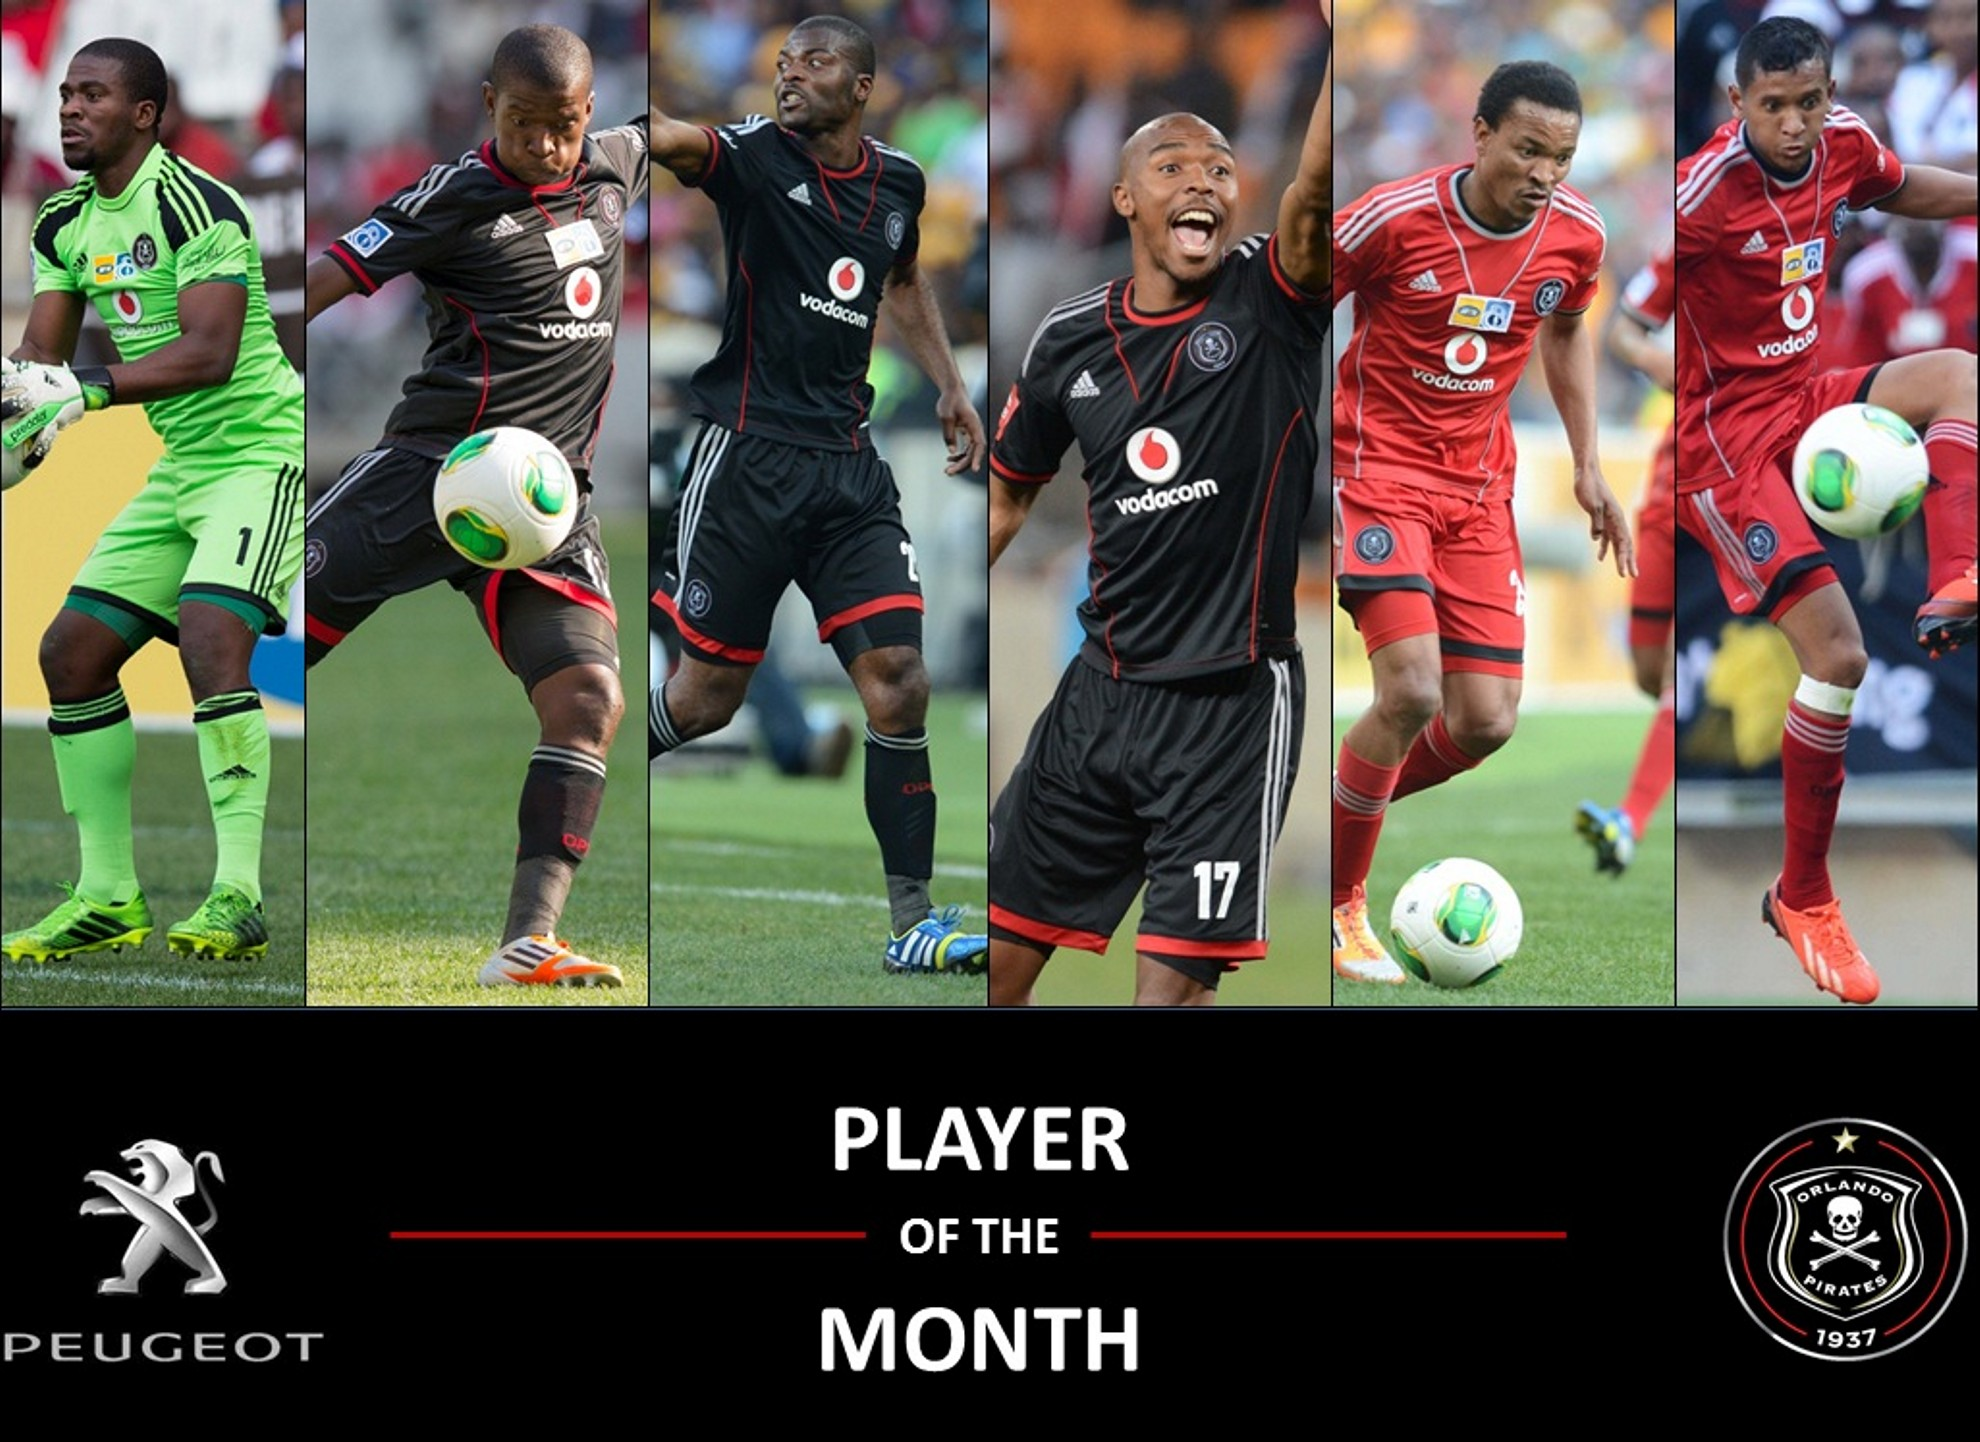 Subaru Of South Orlando >> Orlando Pirates Soccer Player of the Month Travels in Style